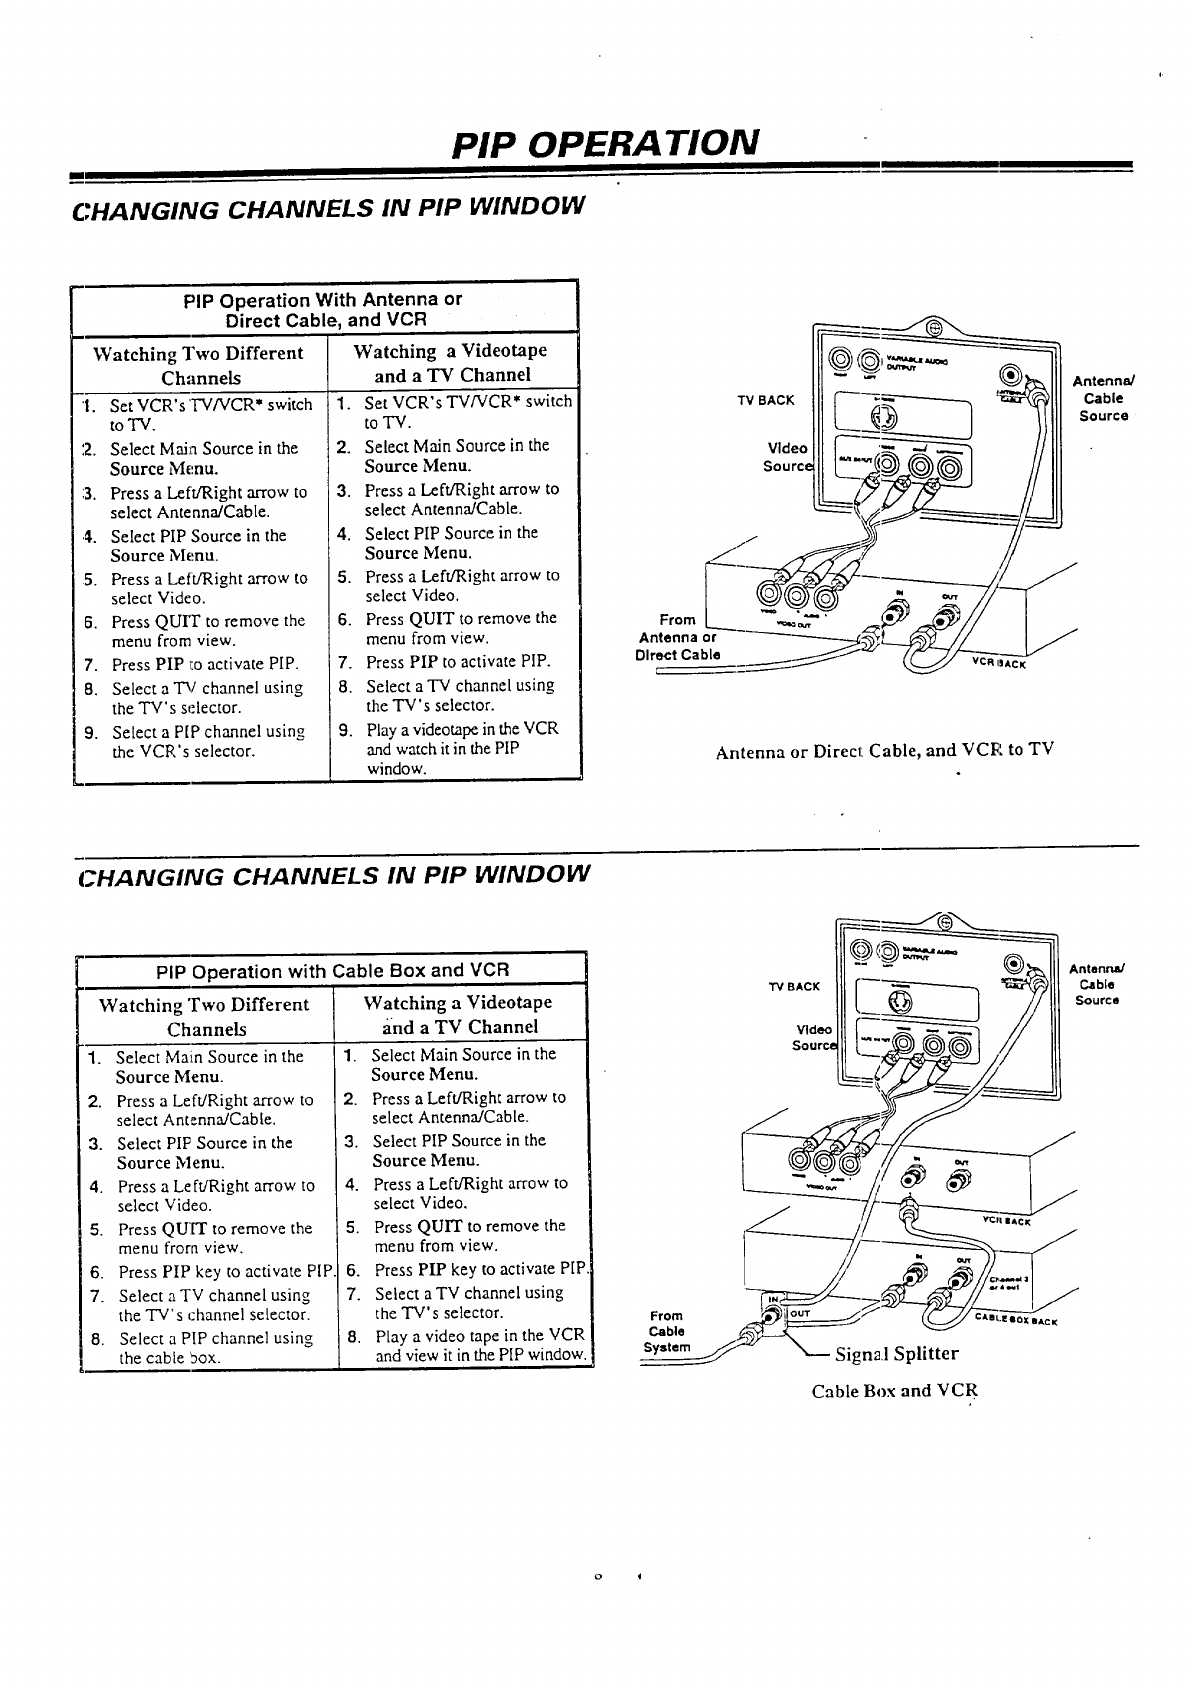 Pip And Vcr Wiring Diagram Library Clifford Alarms B134718b Zenith Direct View Digital 27 To 40 Tv Manual 97120032